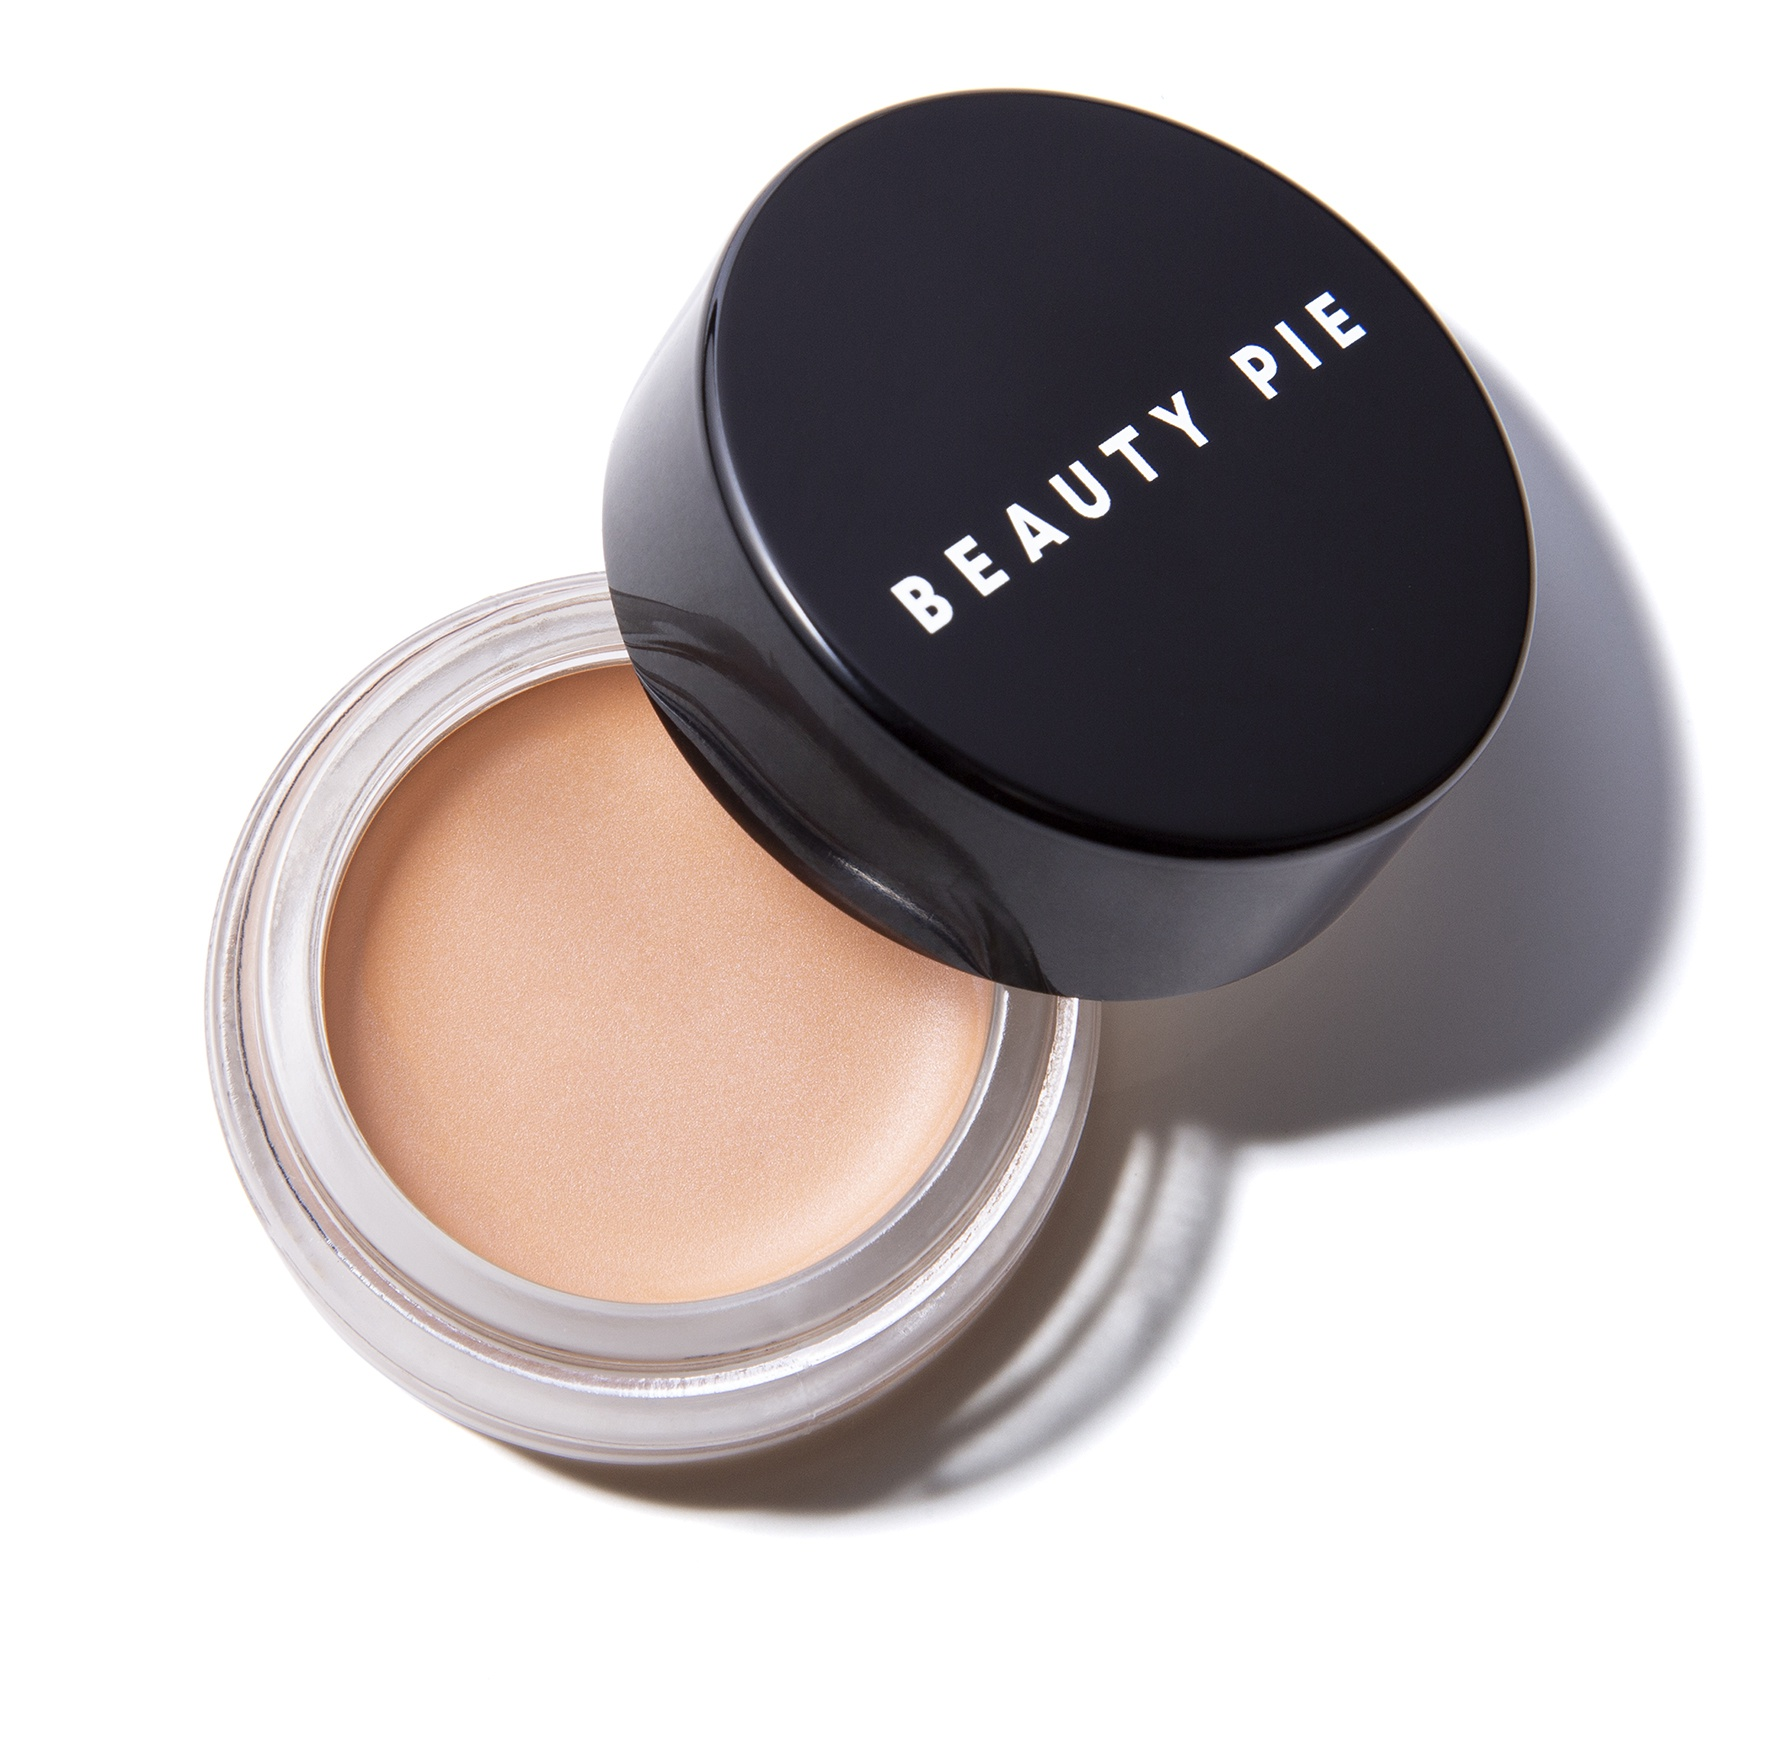 Beauty Pie Superluminous Genius Eye